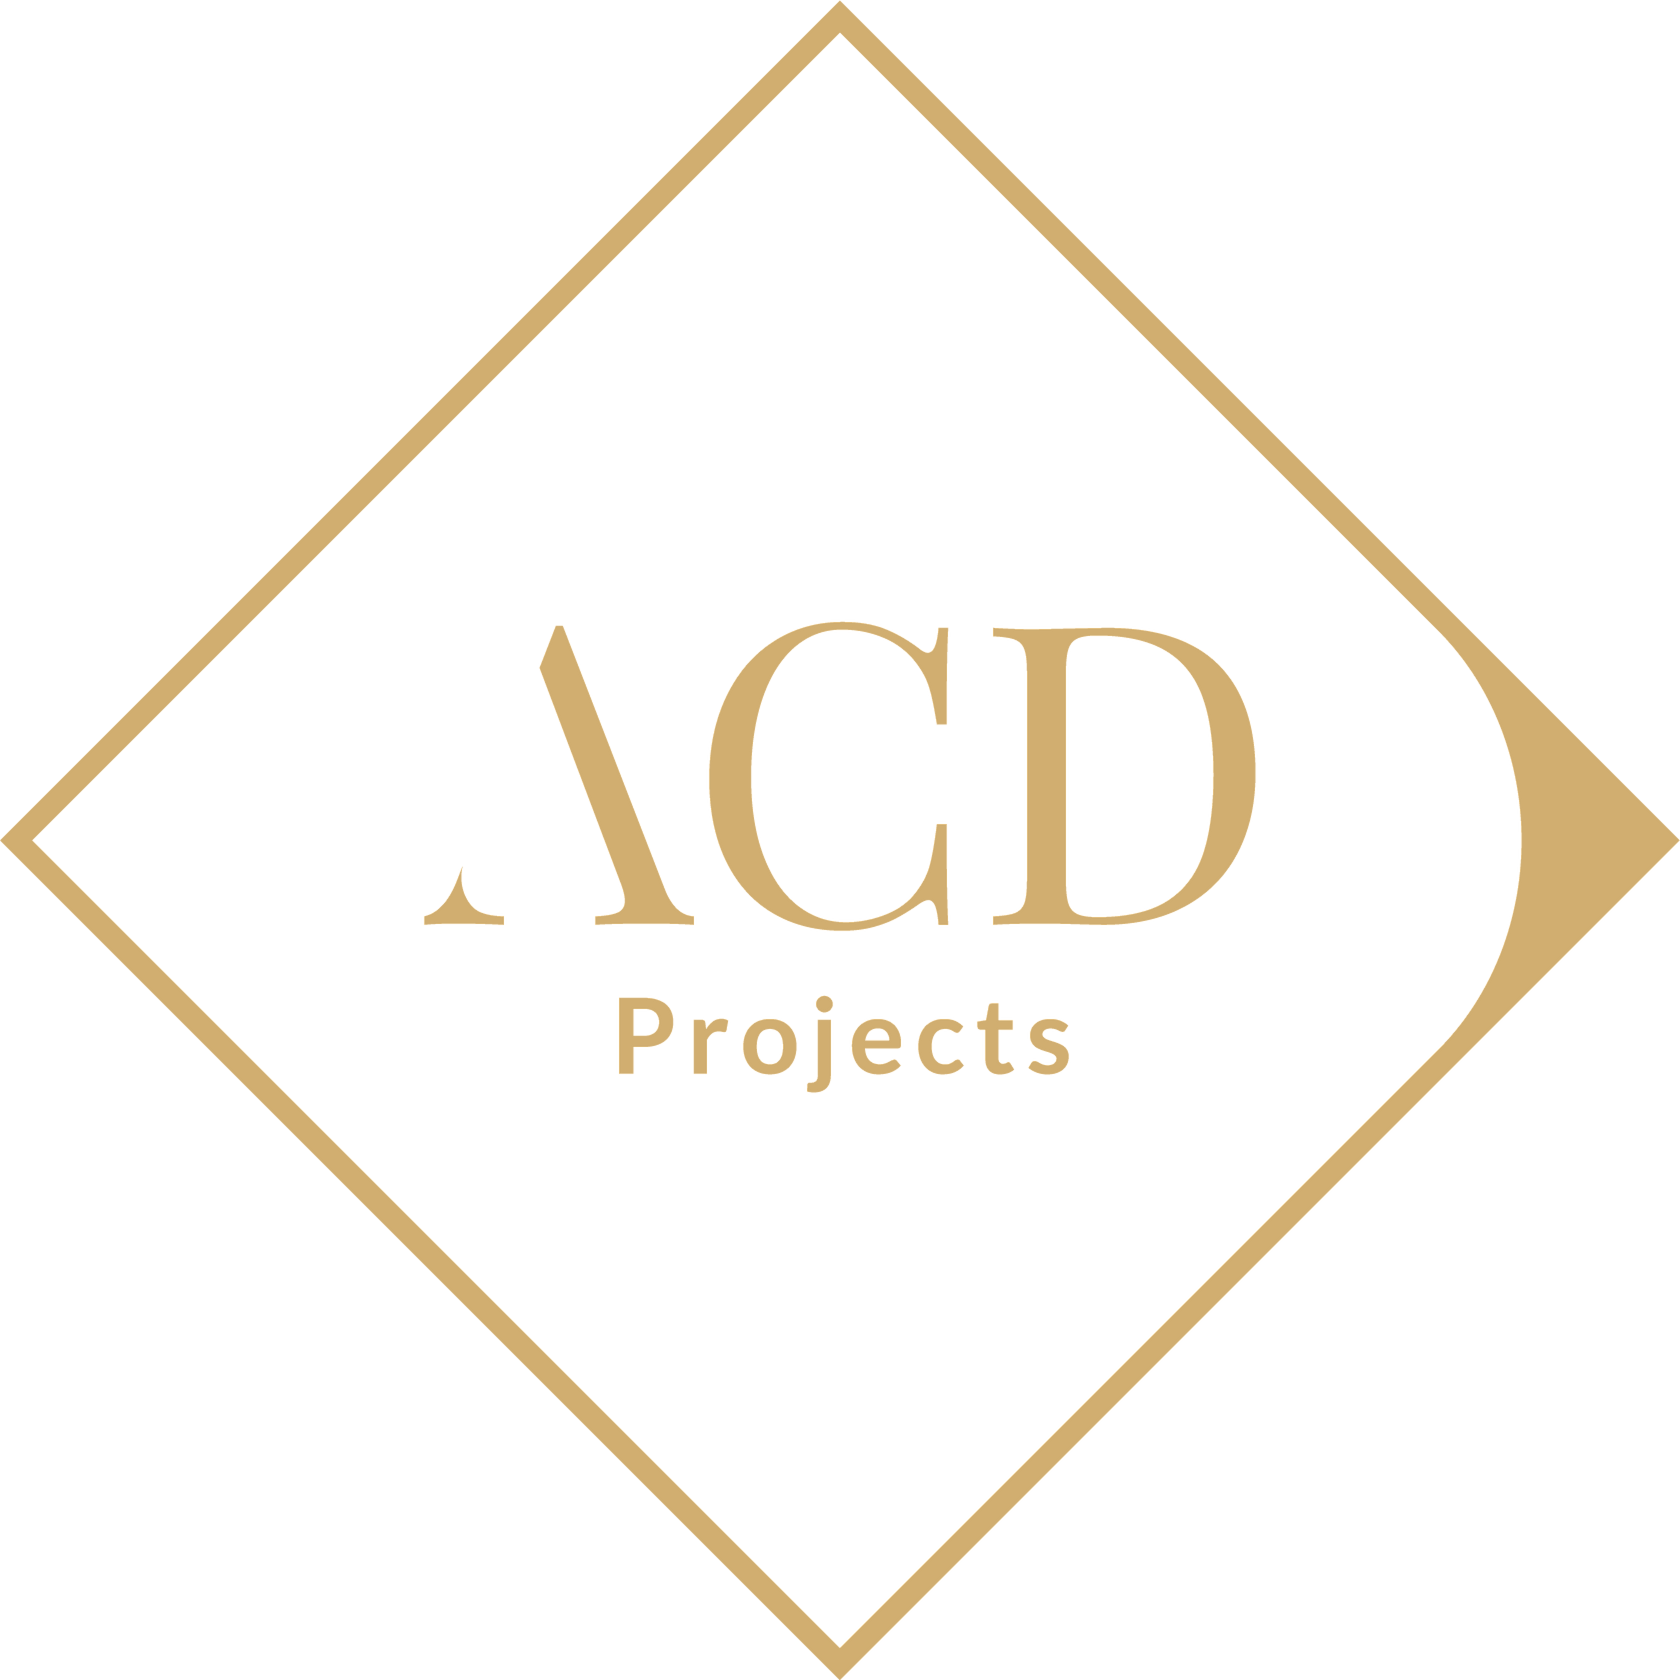 ACD Projects Ltd